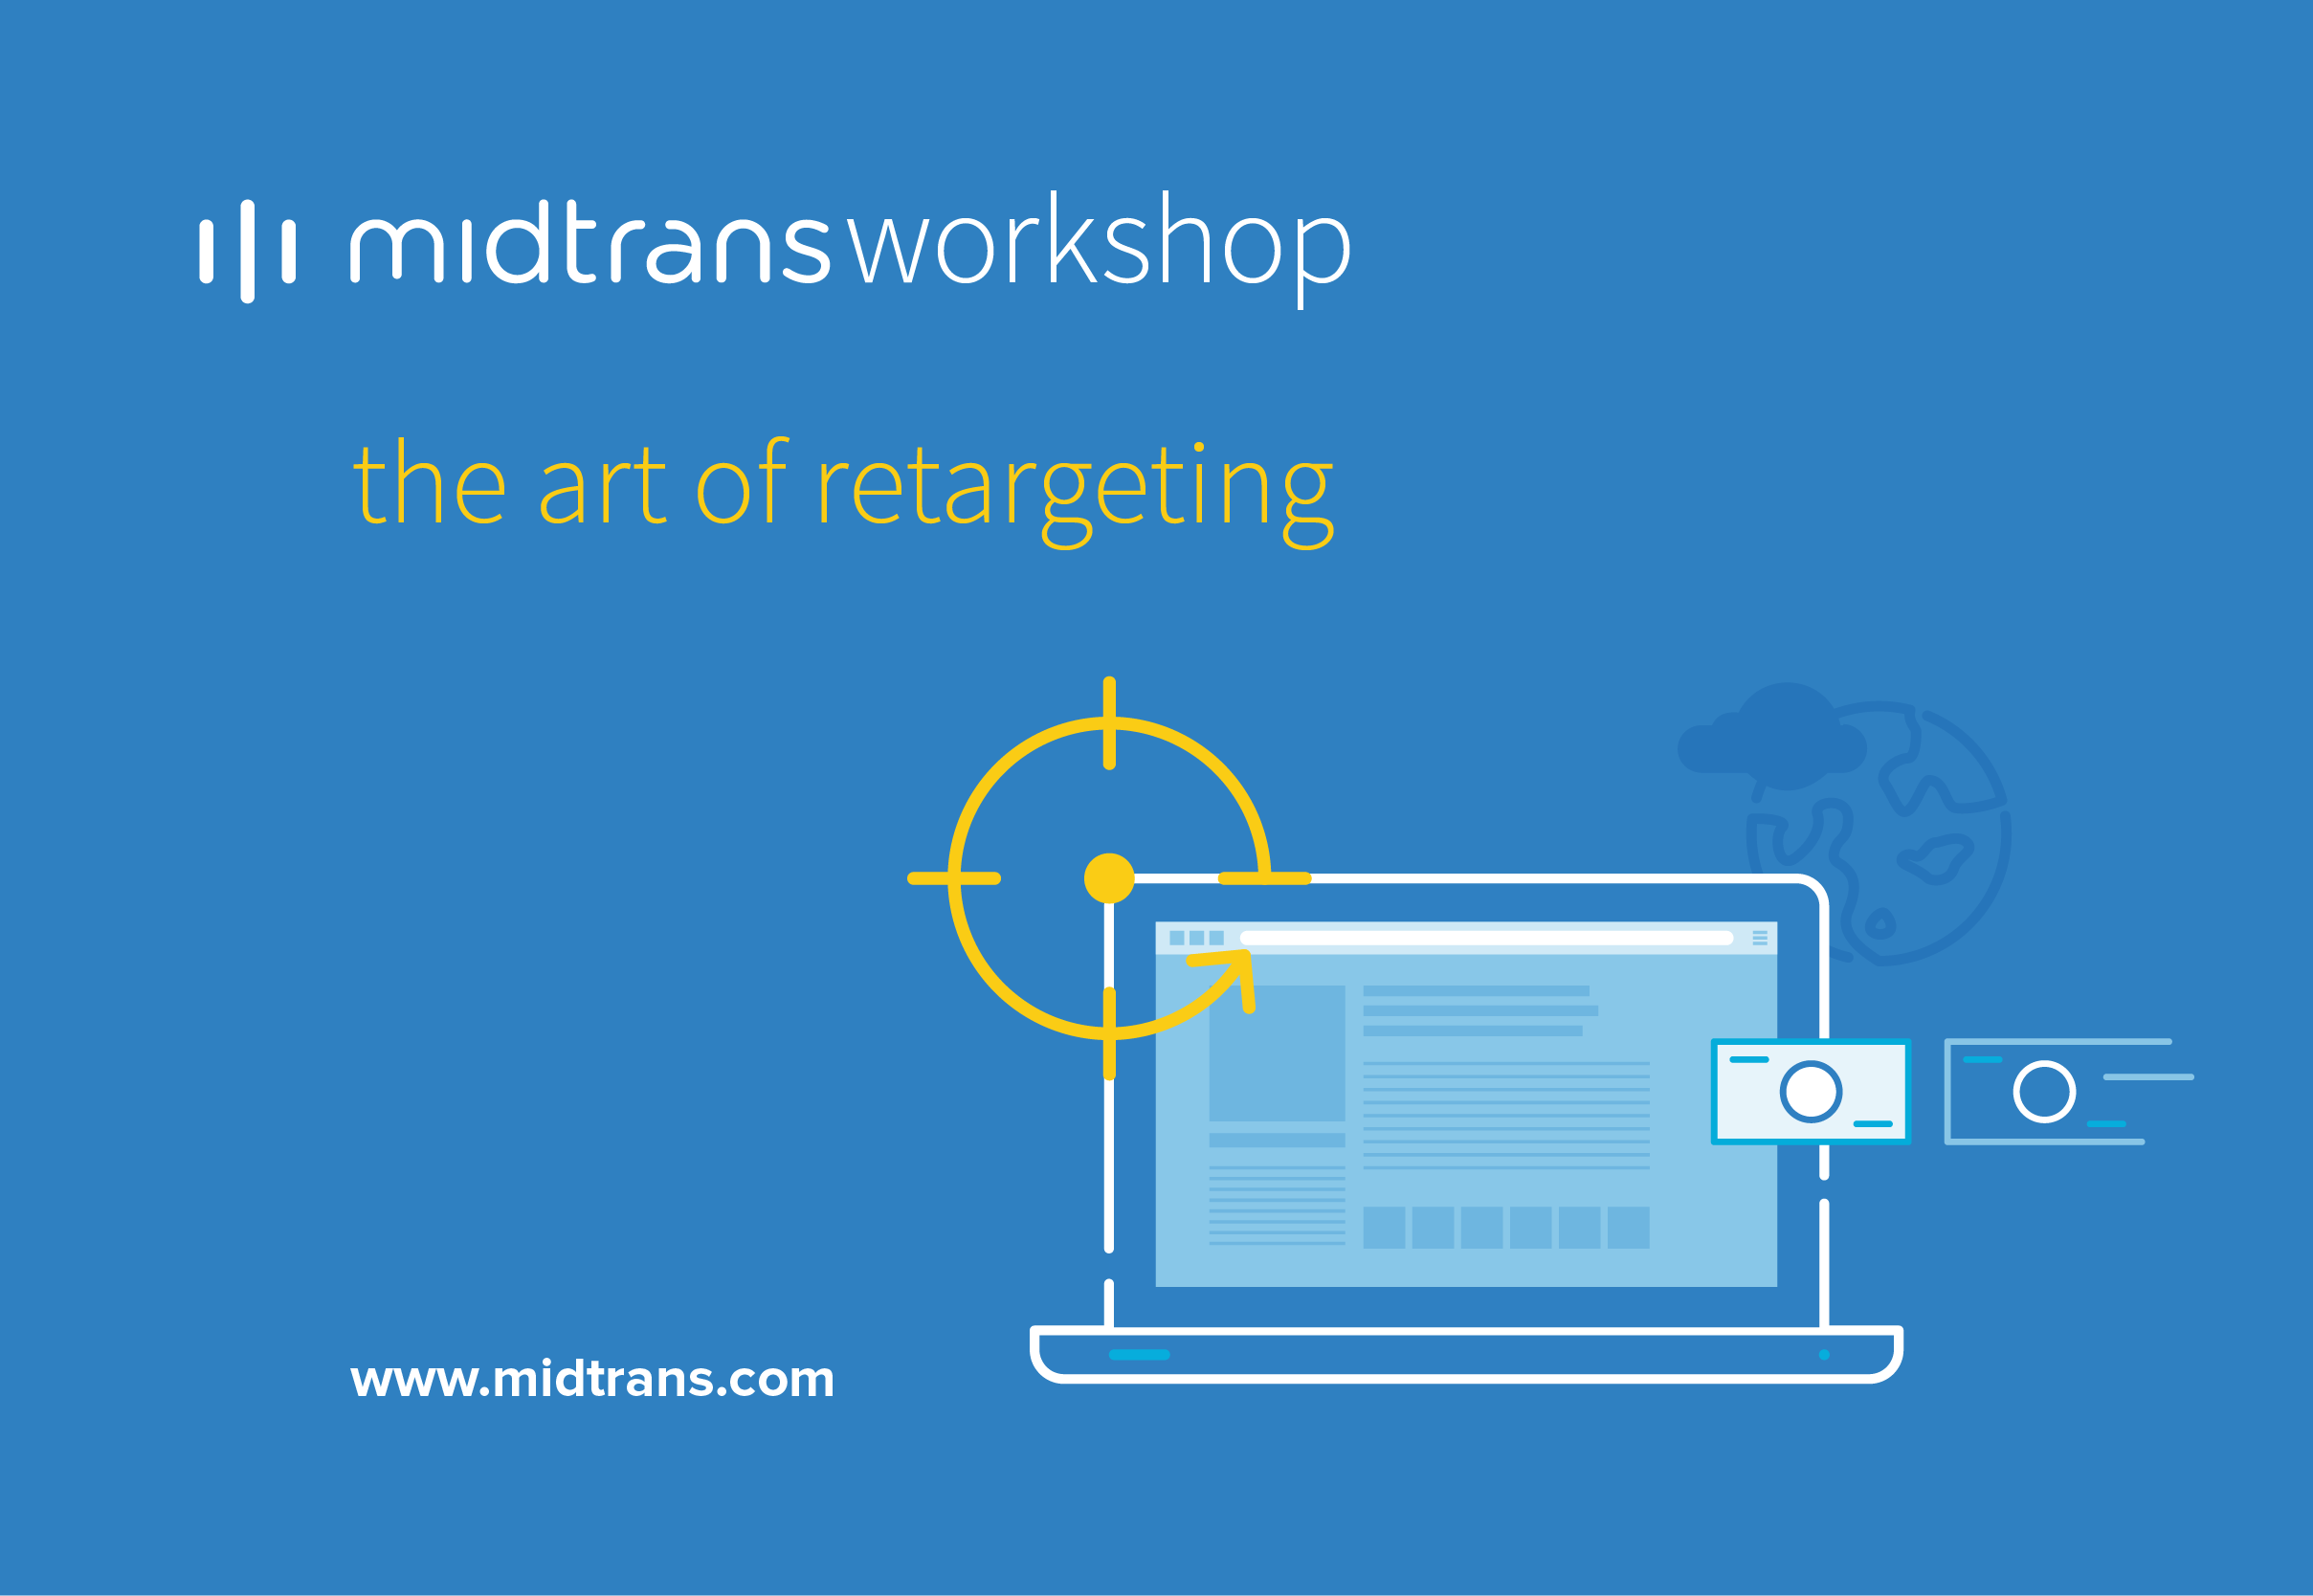 MidtransWorkshop: The Art of Retargeting